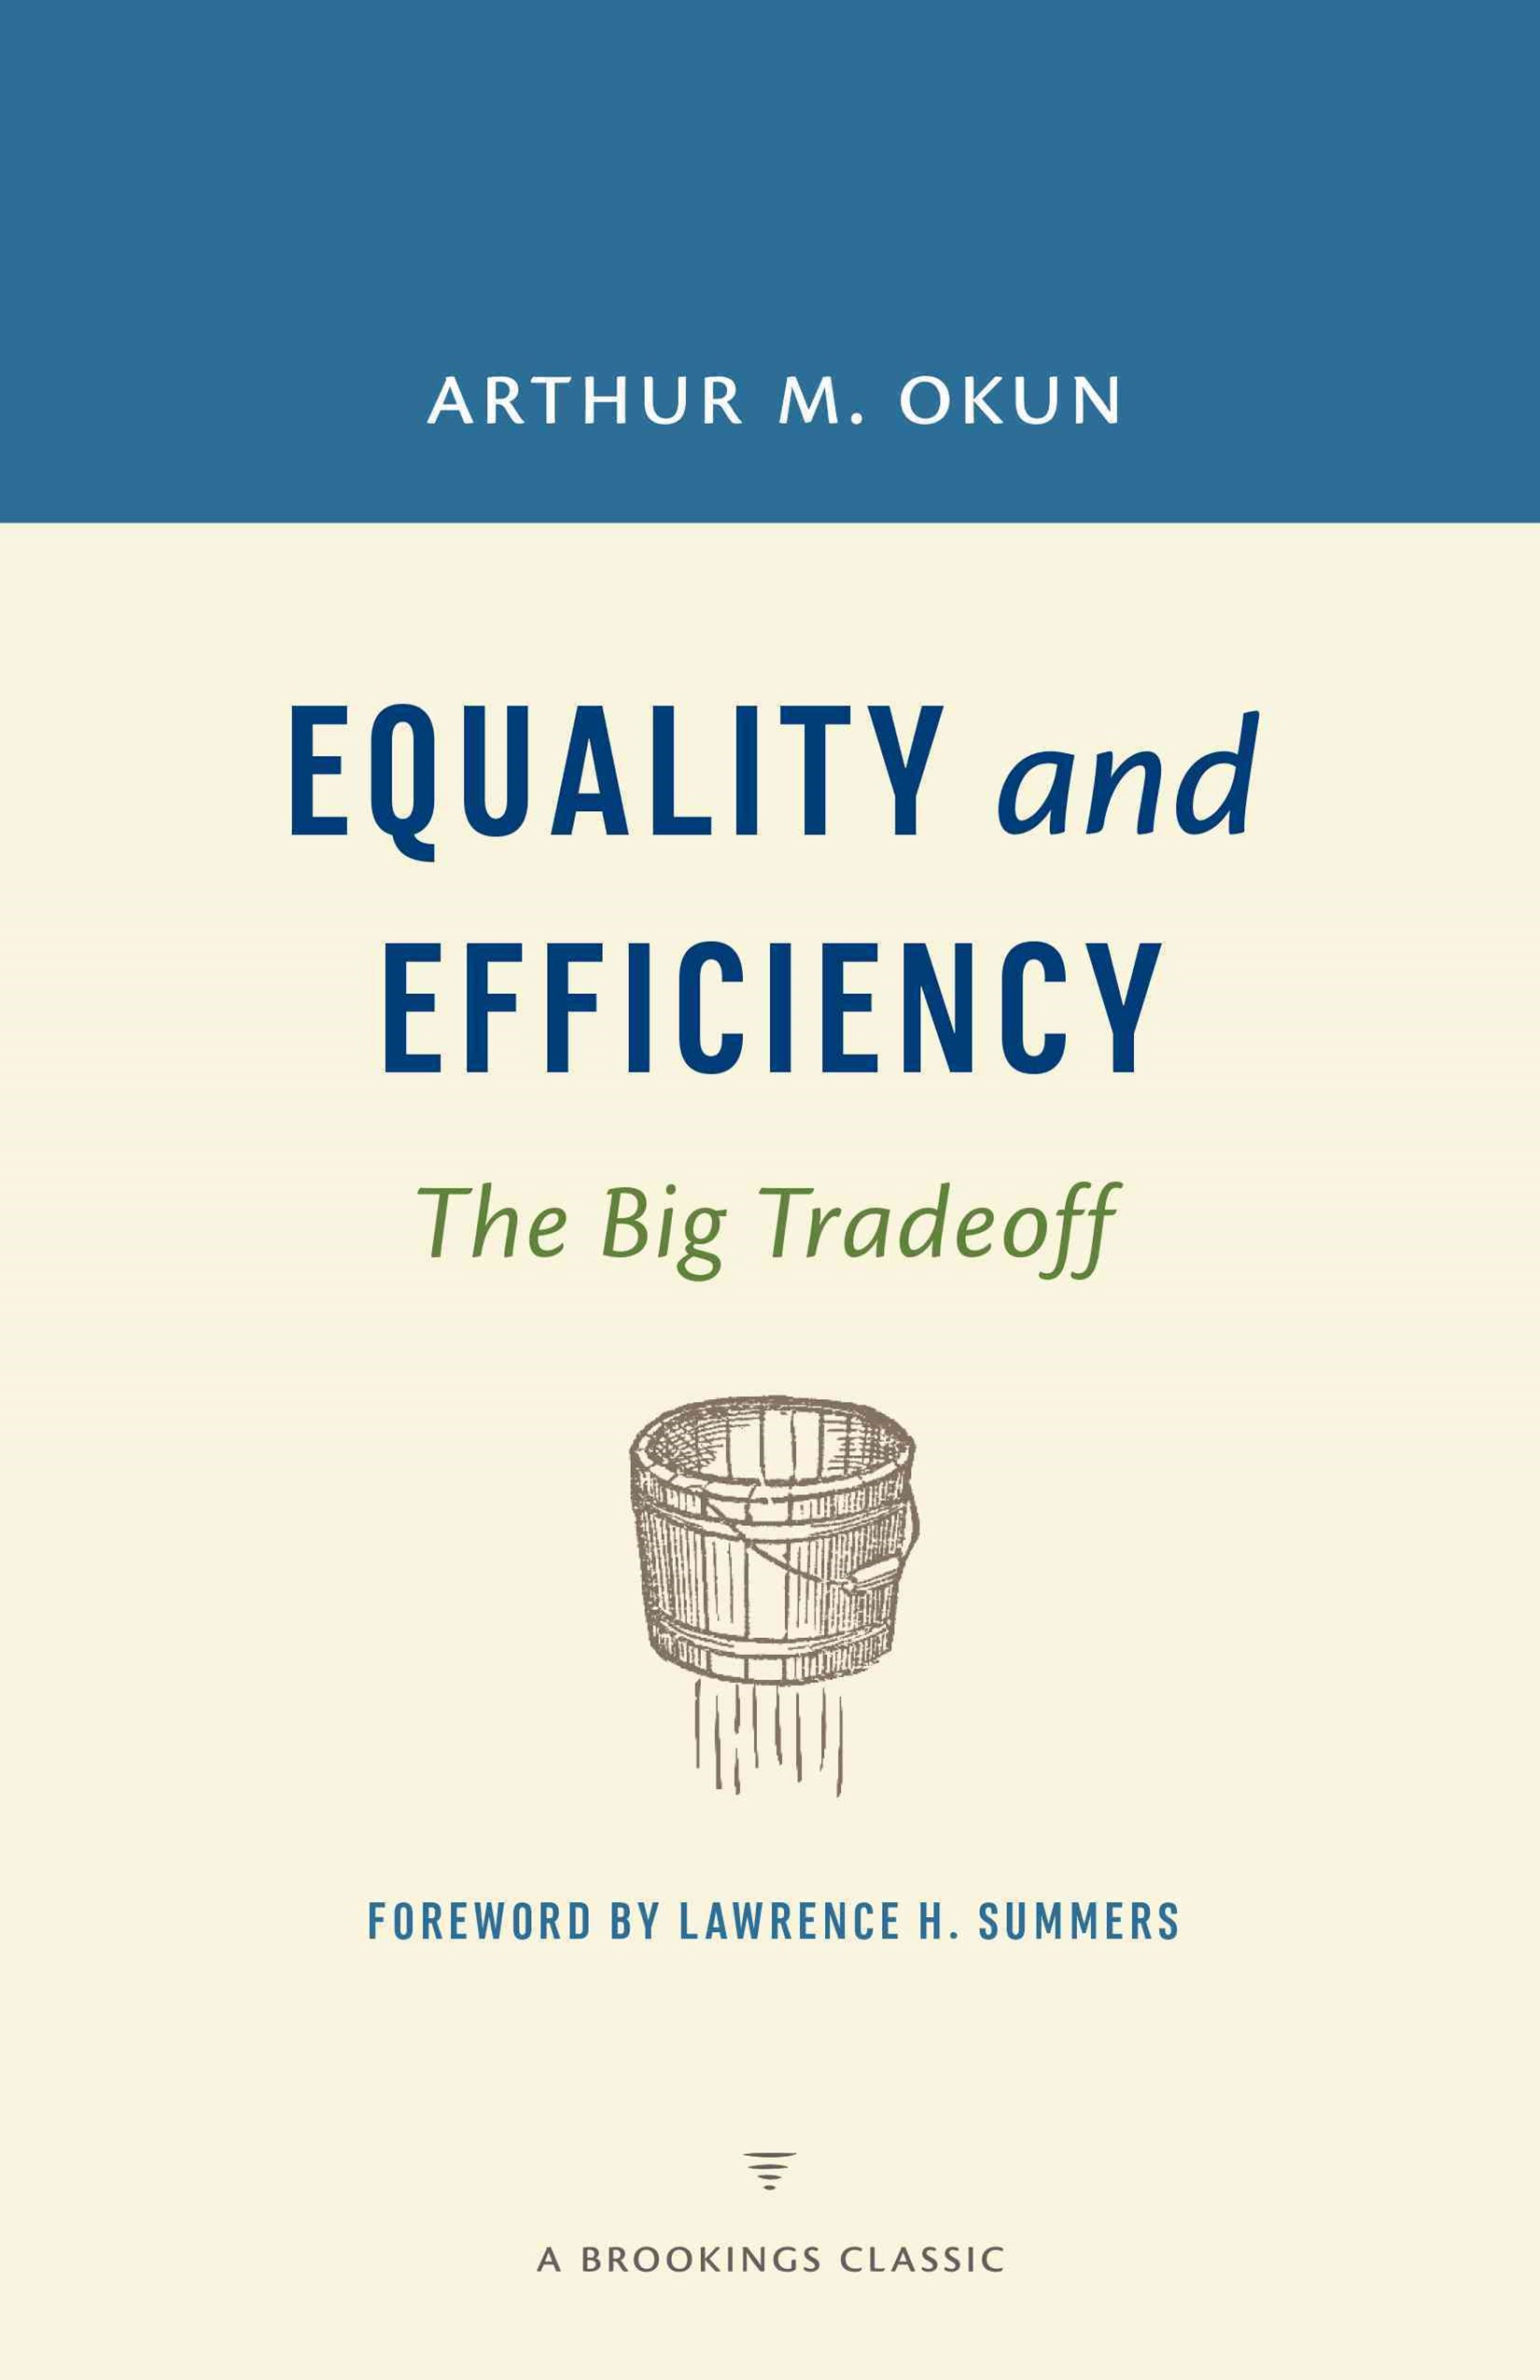 Equality and Efficiency